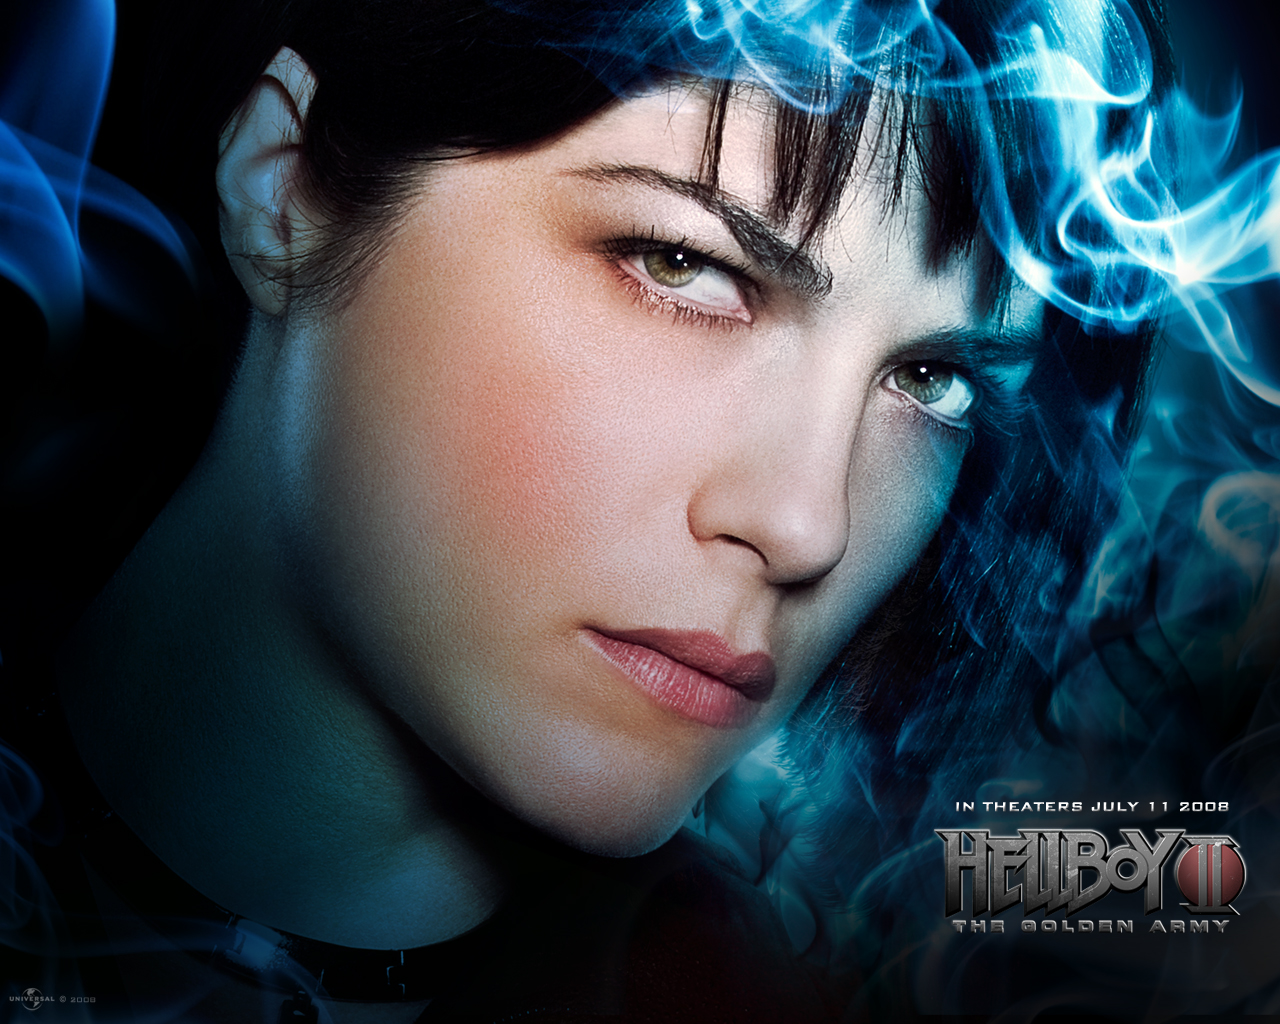 http://images.fanpop.com/images/image_uploads/Hellboy-II--The-Golden-Army-selma-blair-555670_1280_1024.jpg